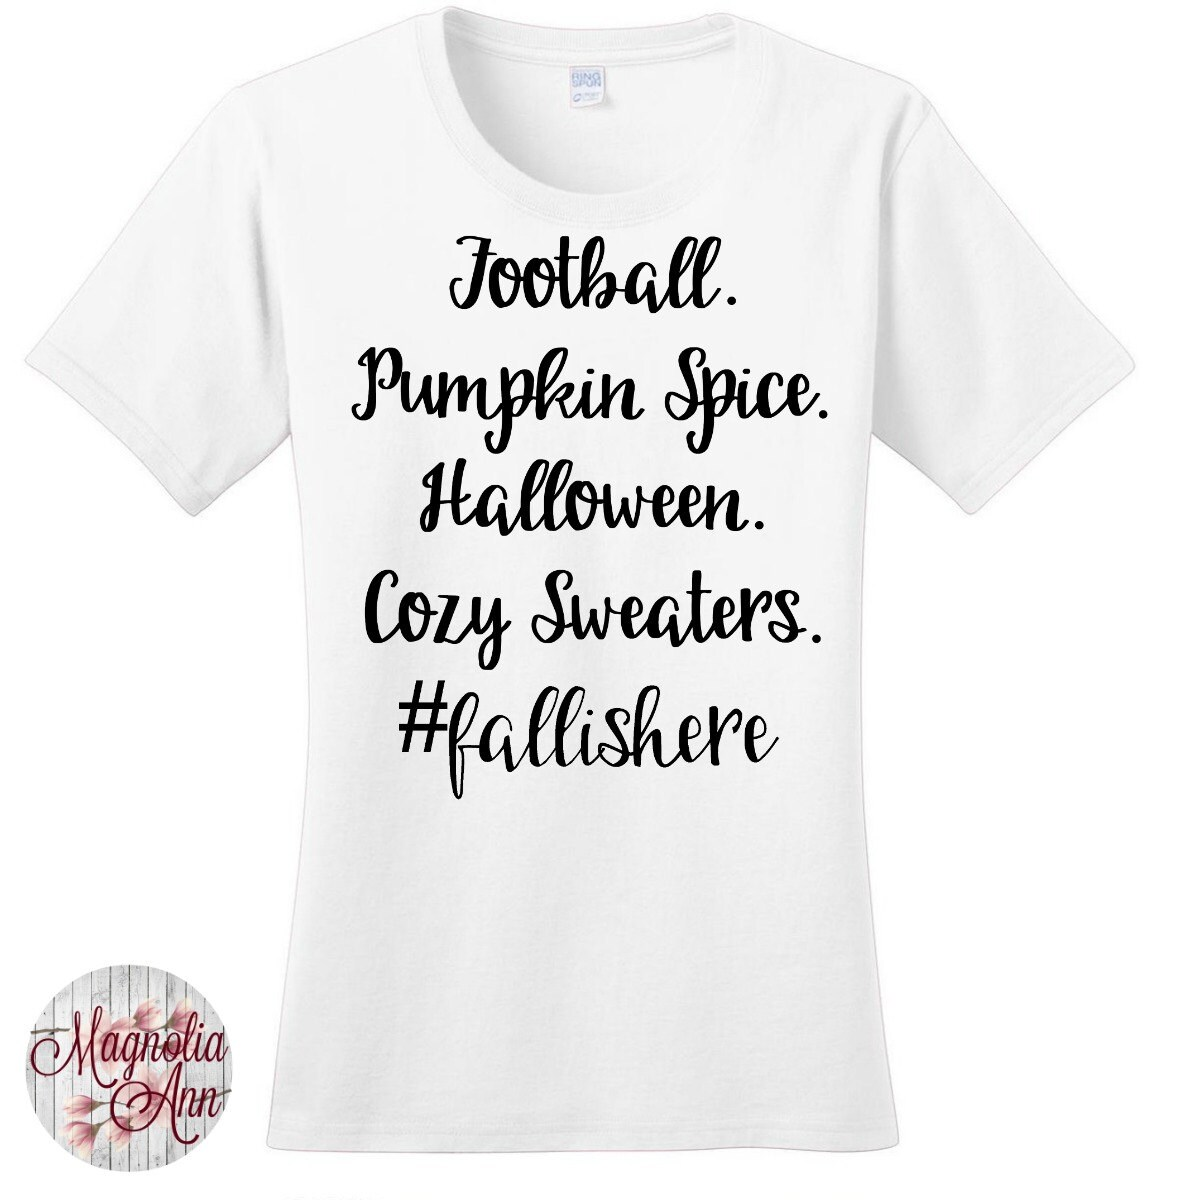 5e5440c50 Football Pumpkin Spice Halloween Cozy Sweaters #fallishere Women's Graphic  T-shirt in 7 Different Colors in Sizes Small-4X, Plus Size